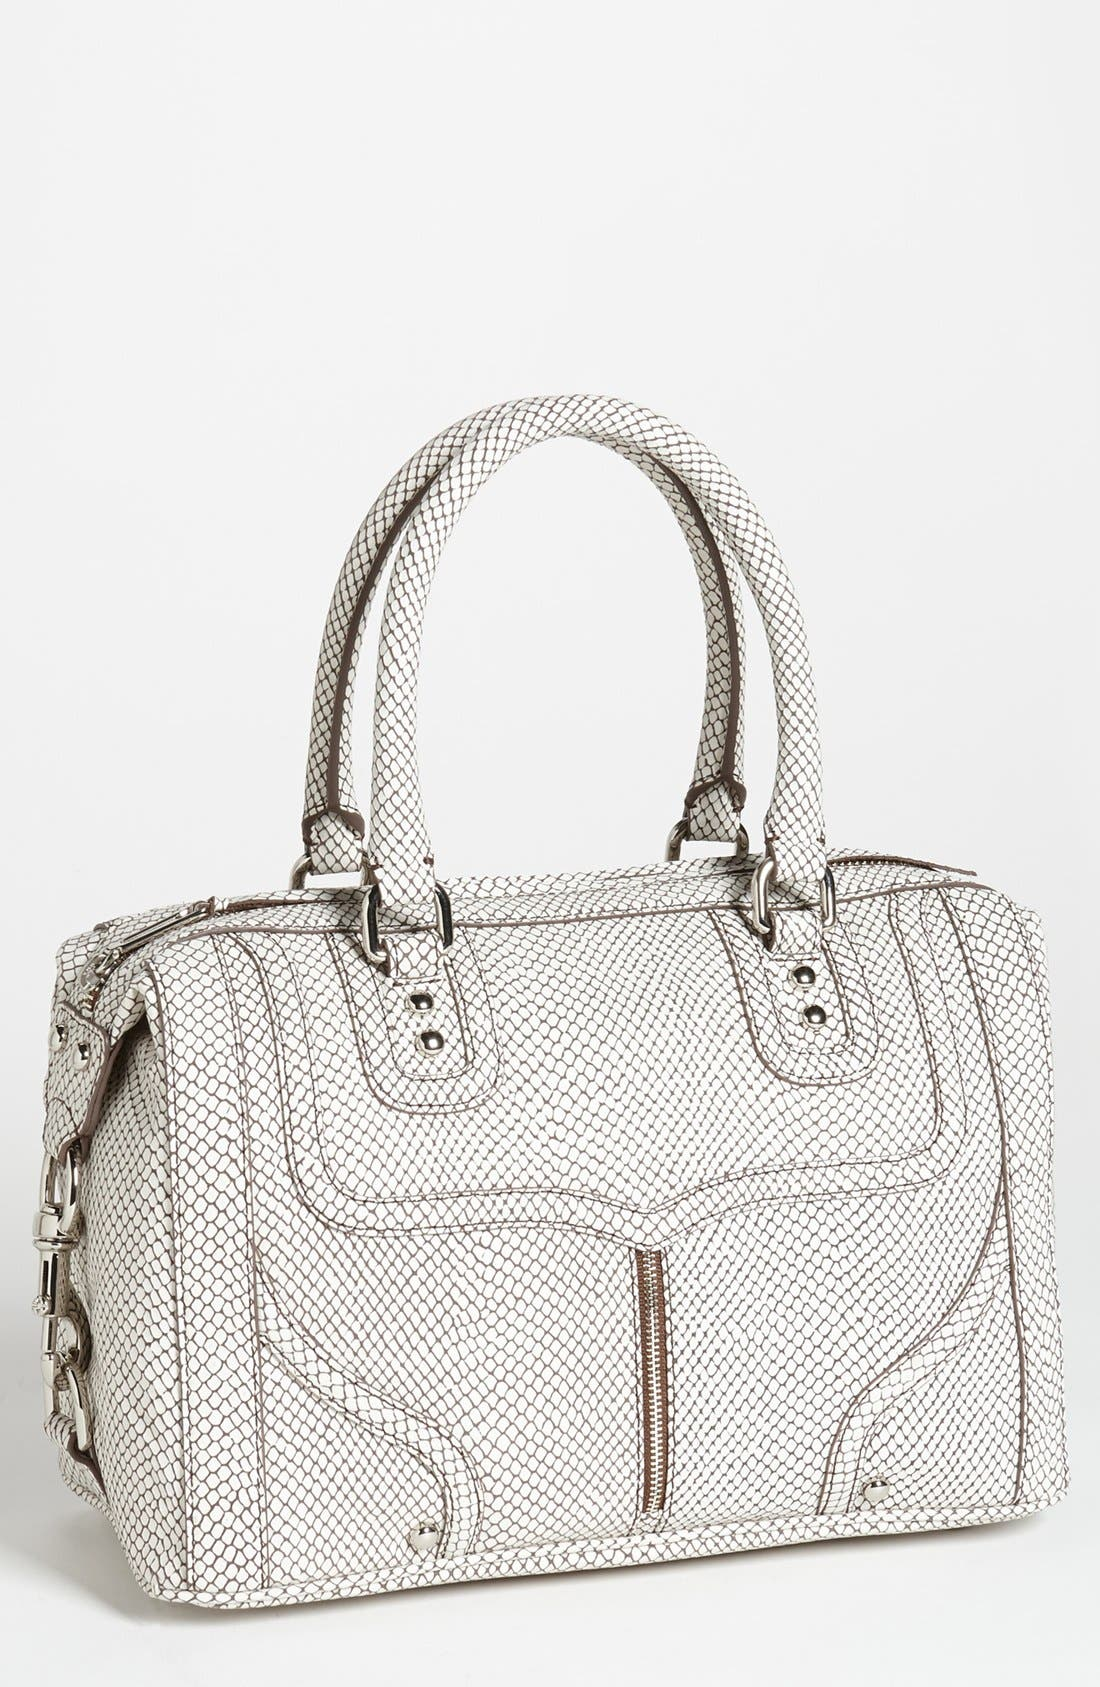 Alternate Image 1 Selected - Rebecca Minkoff 'MAB Mini - Bombe' Satchel